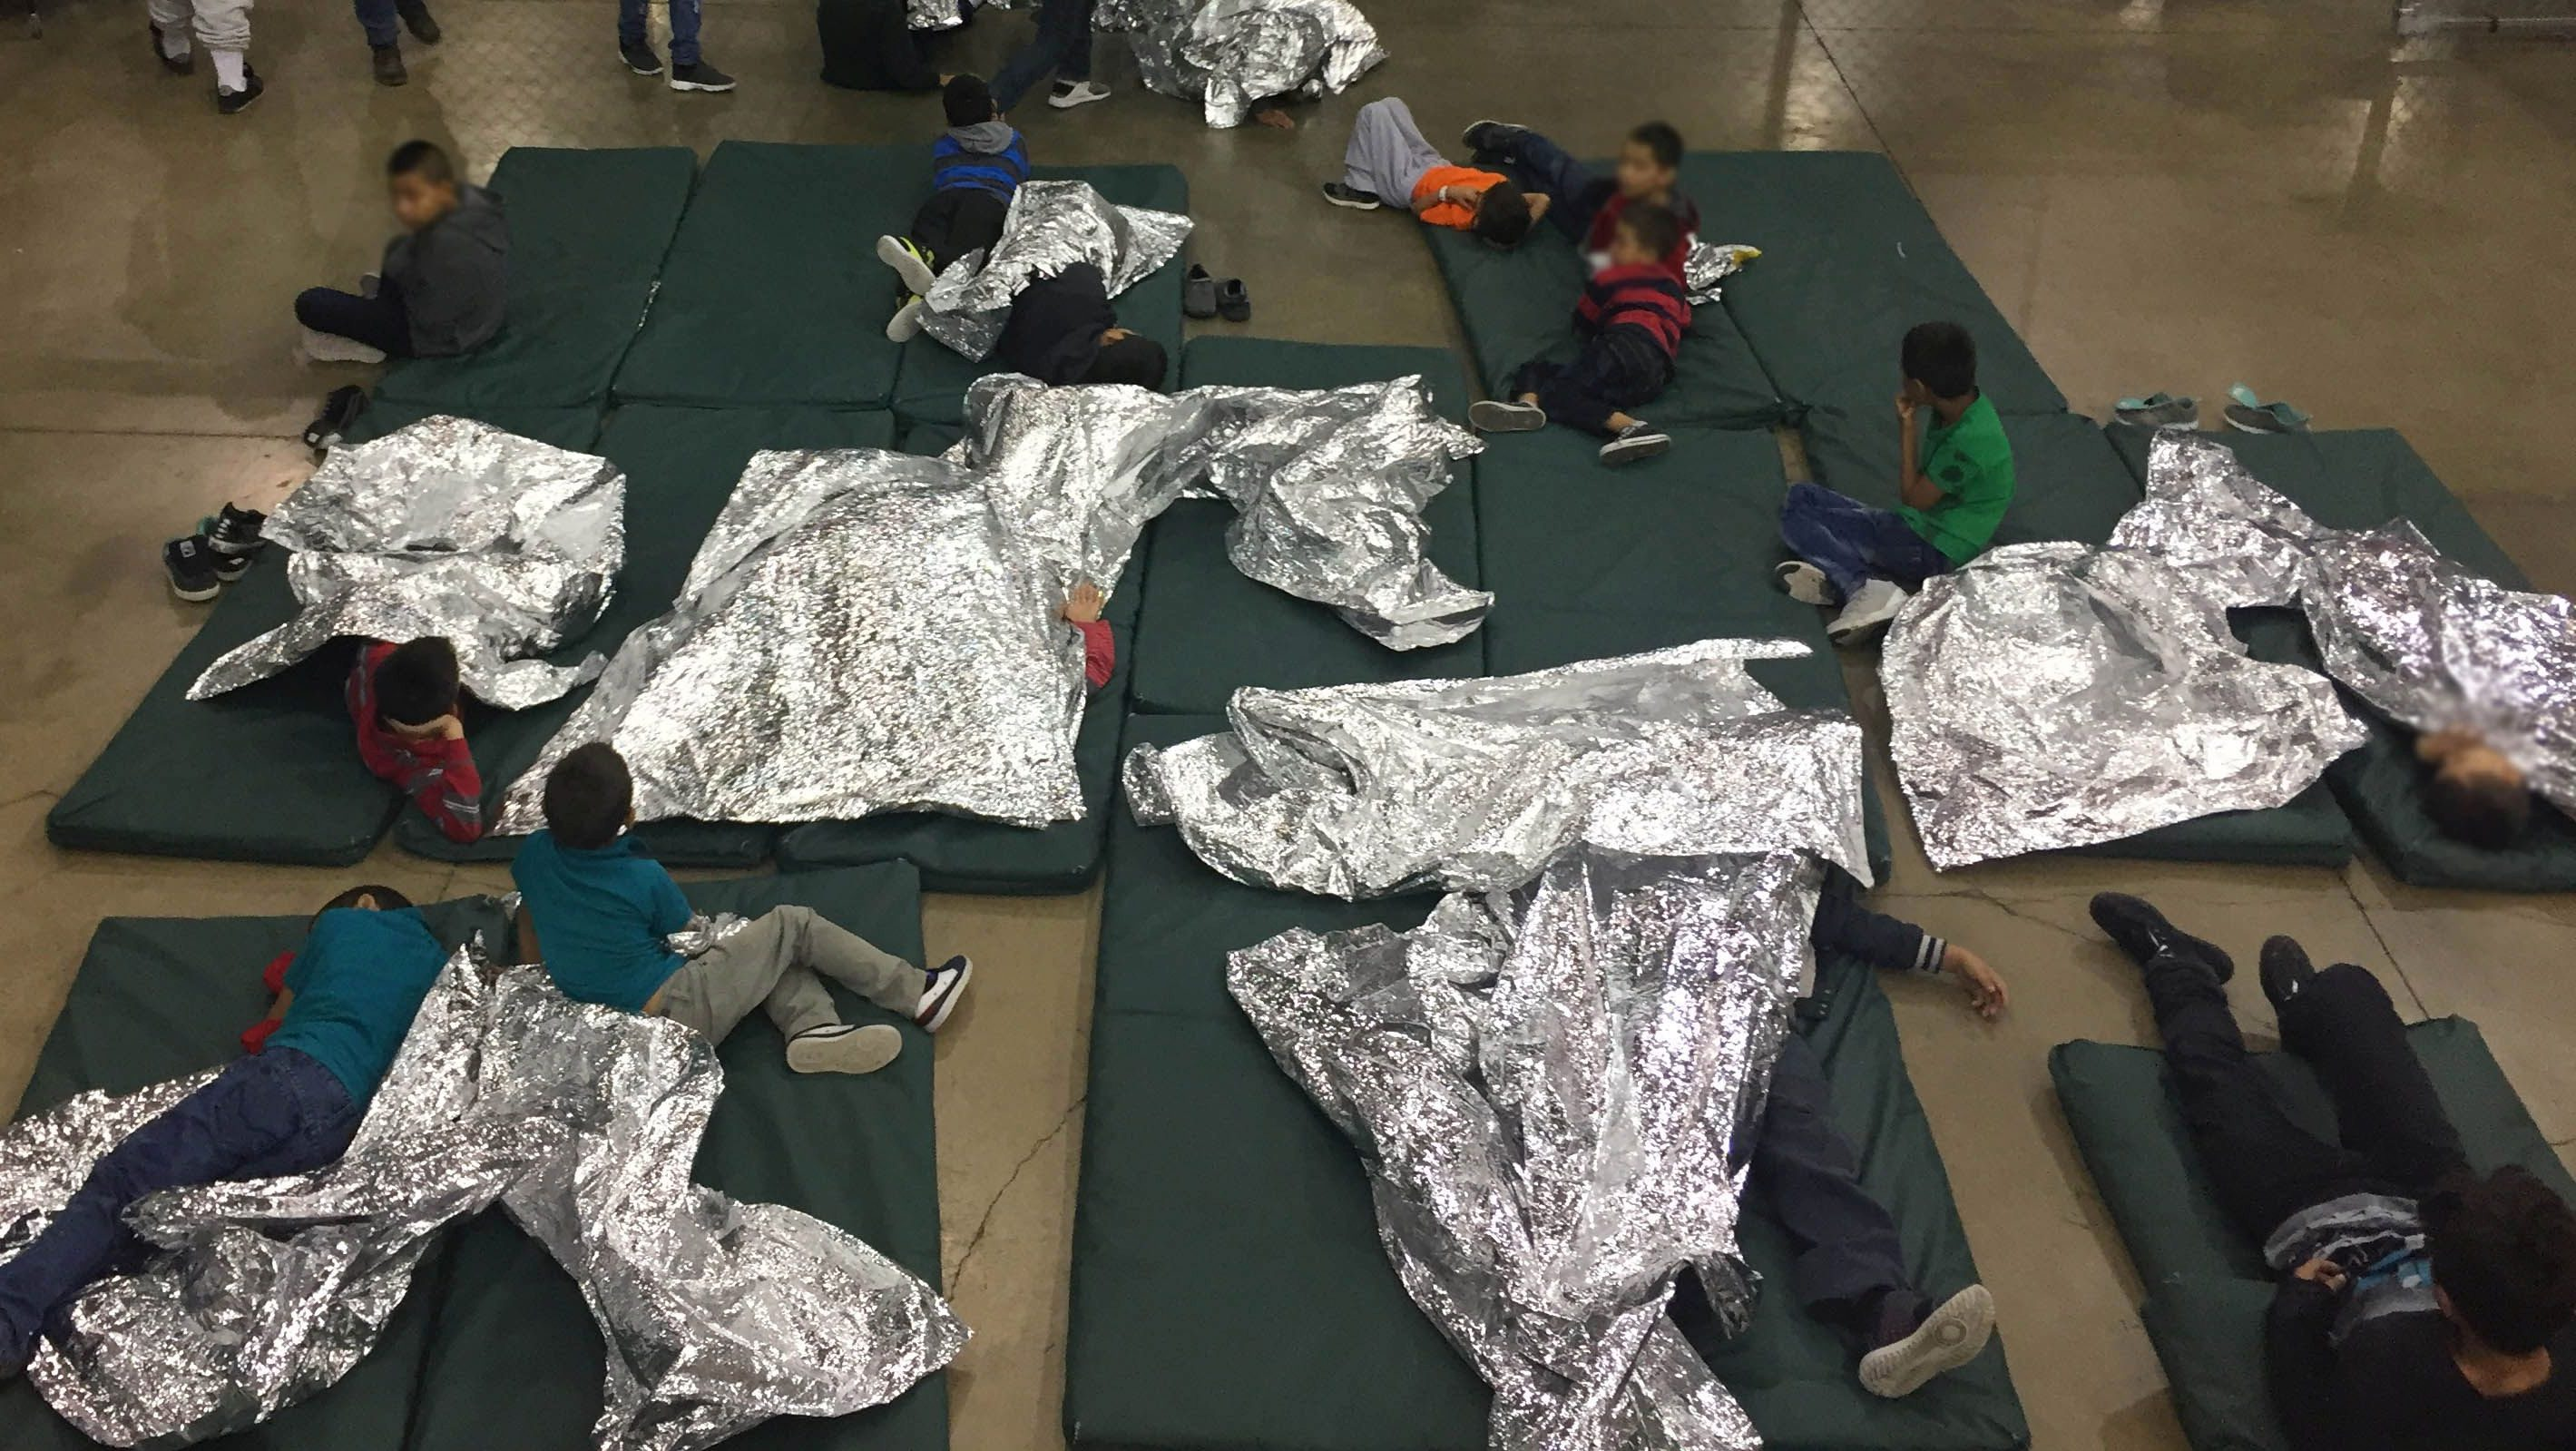 Trump now says he wants these children with their parents